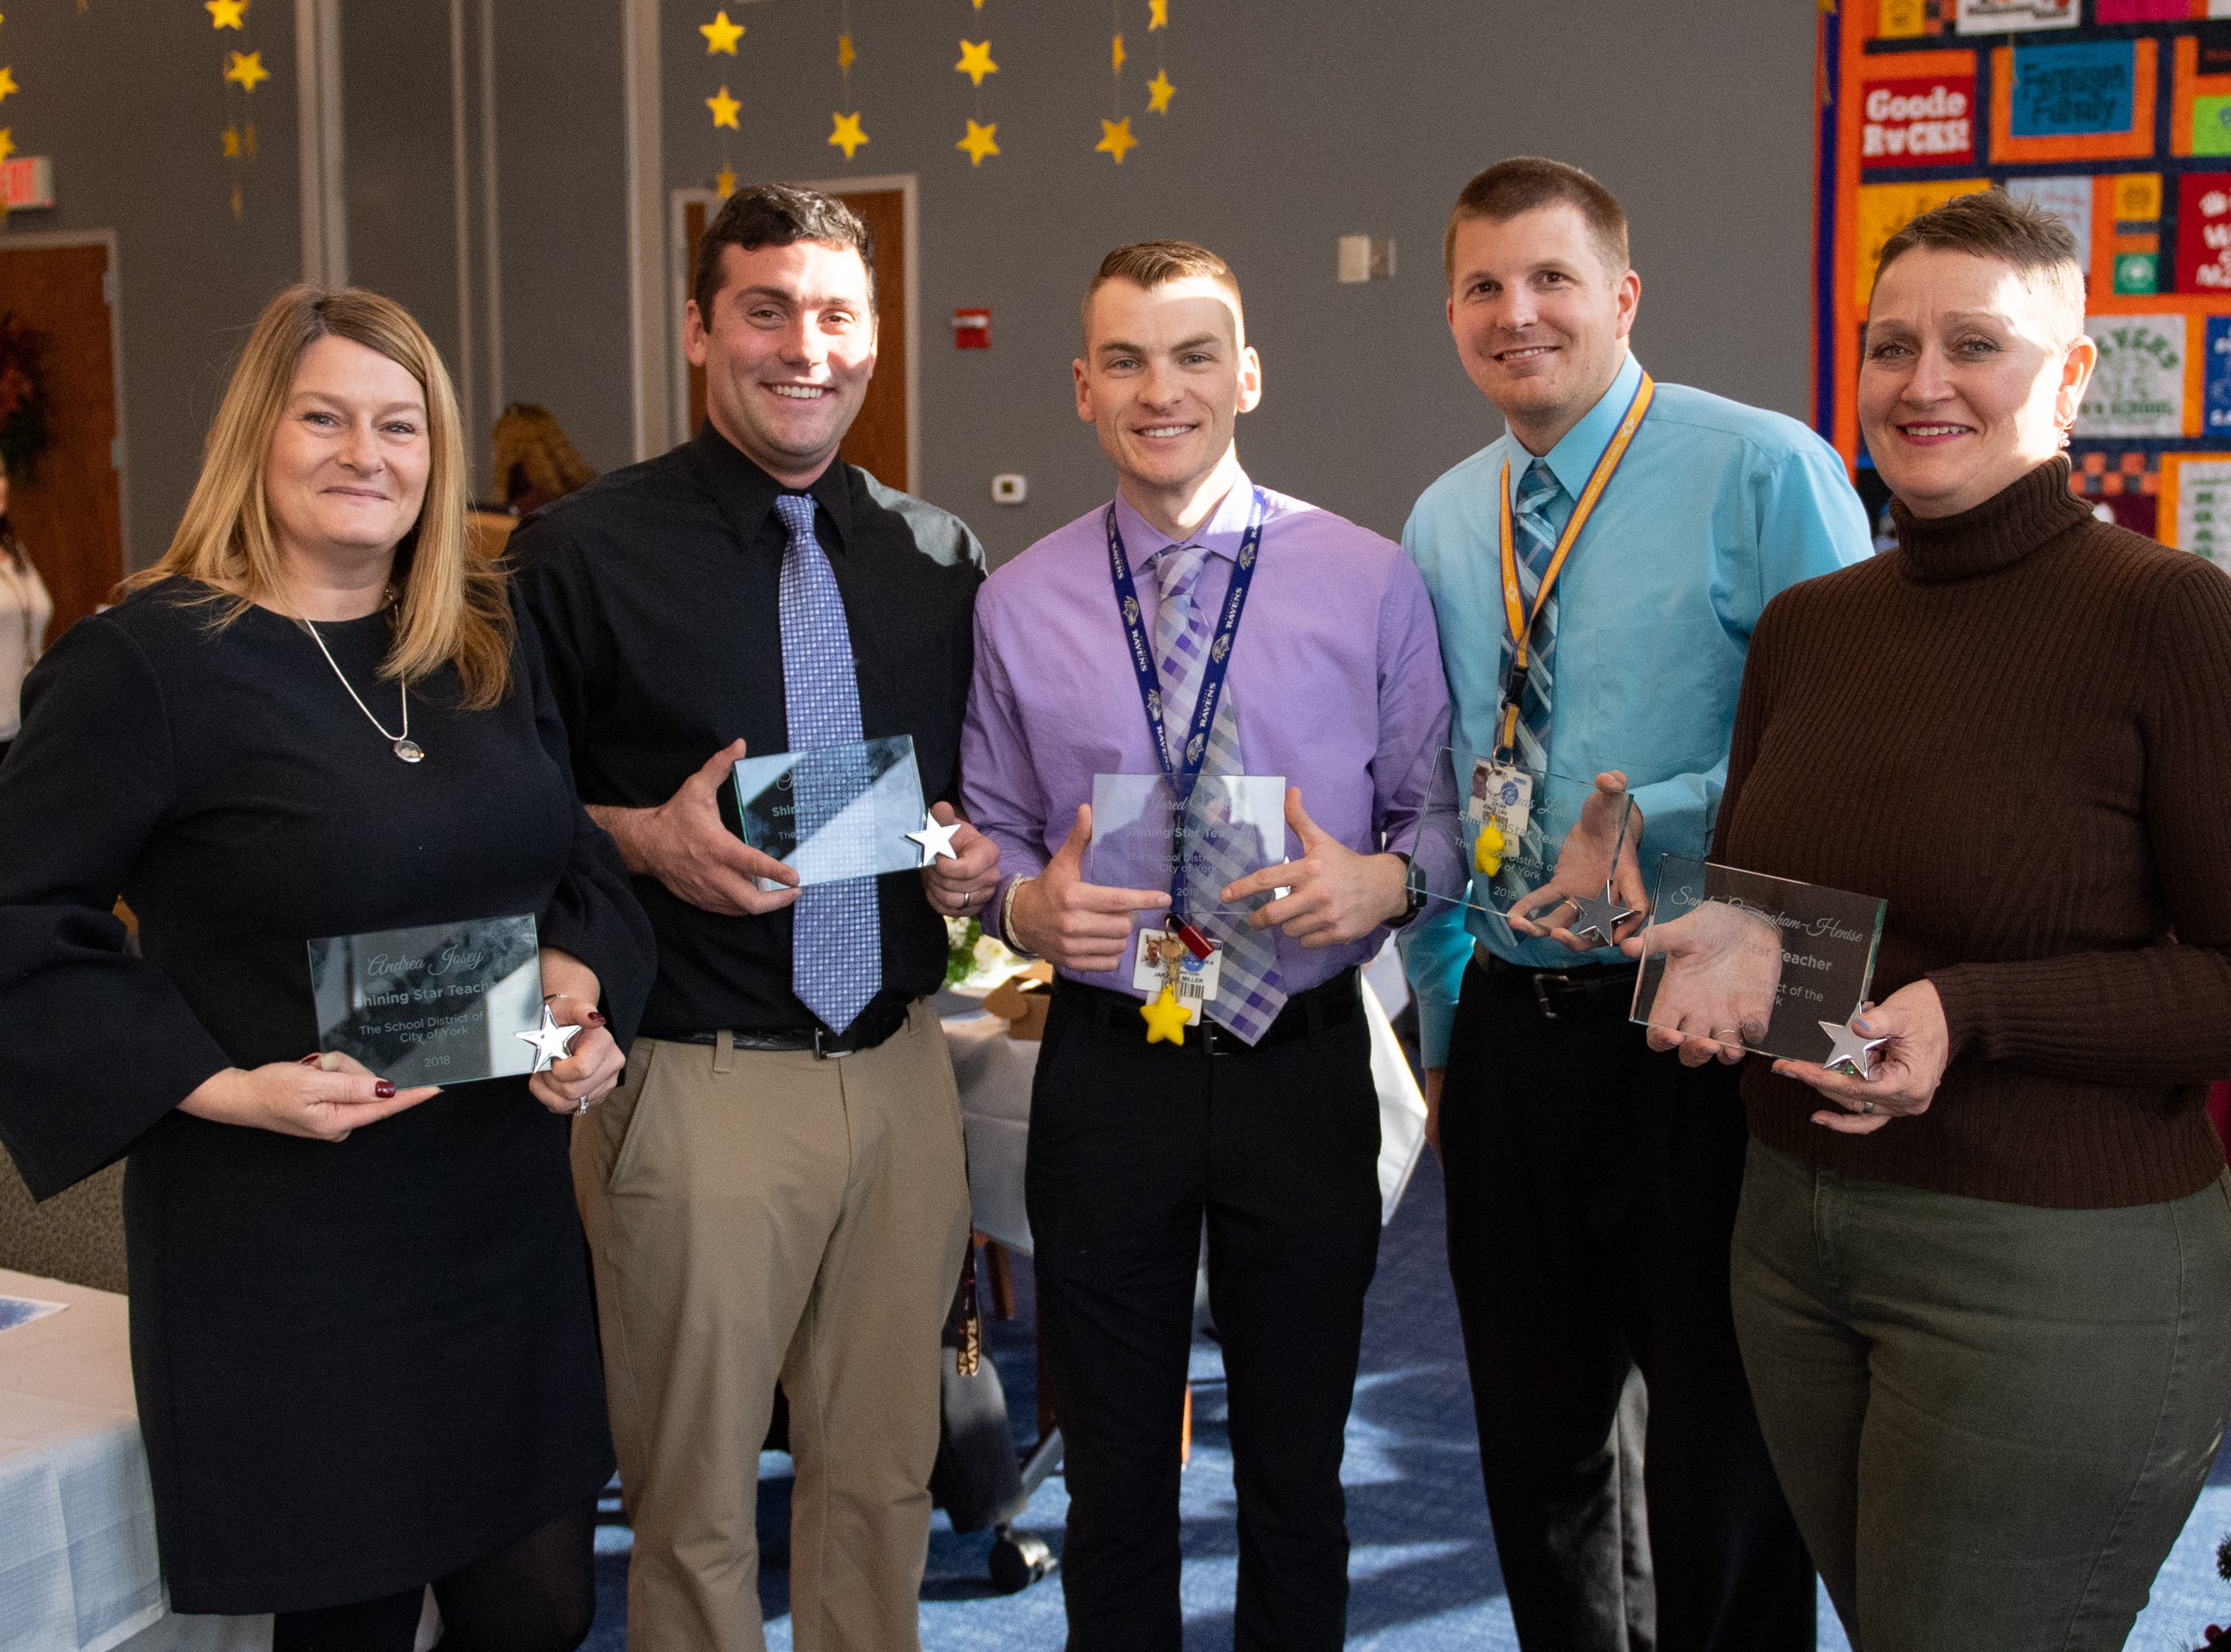 (Left to right) Andrea Josey, Chris Giese, Jared Miller, Jonas Lau and Sandy Cunningham-Henise of Jackson proudly show off their awards, December 6, 2018.